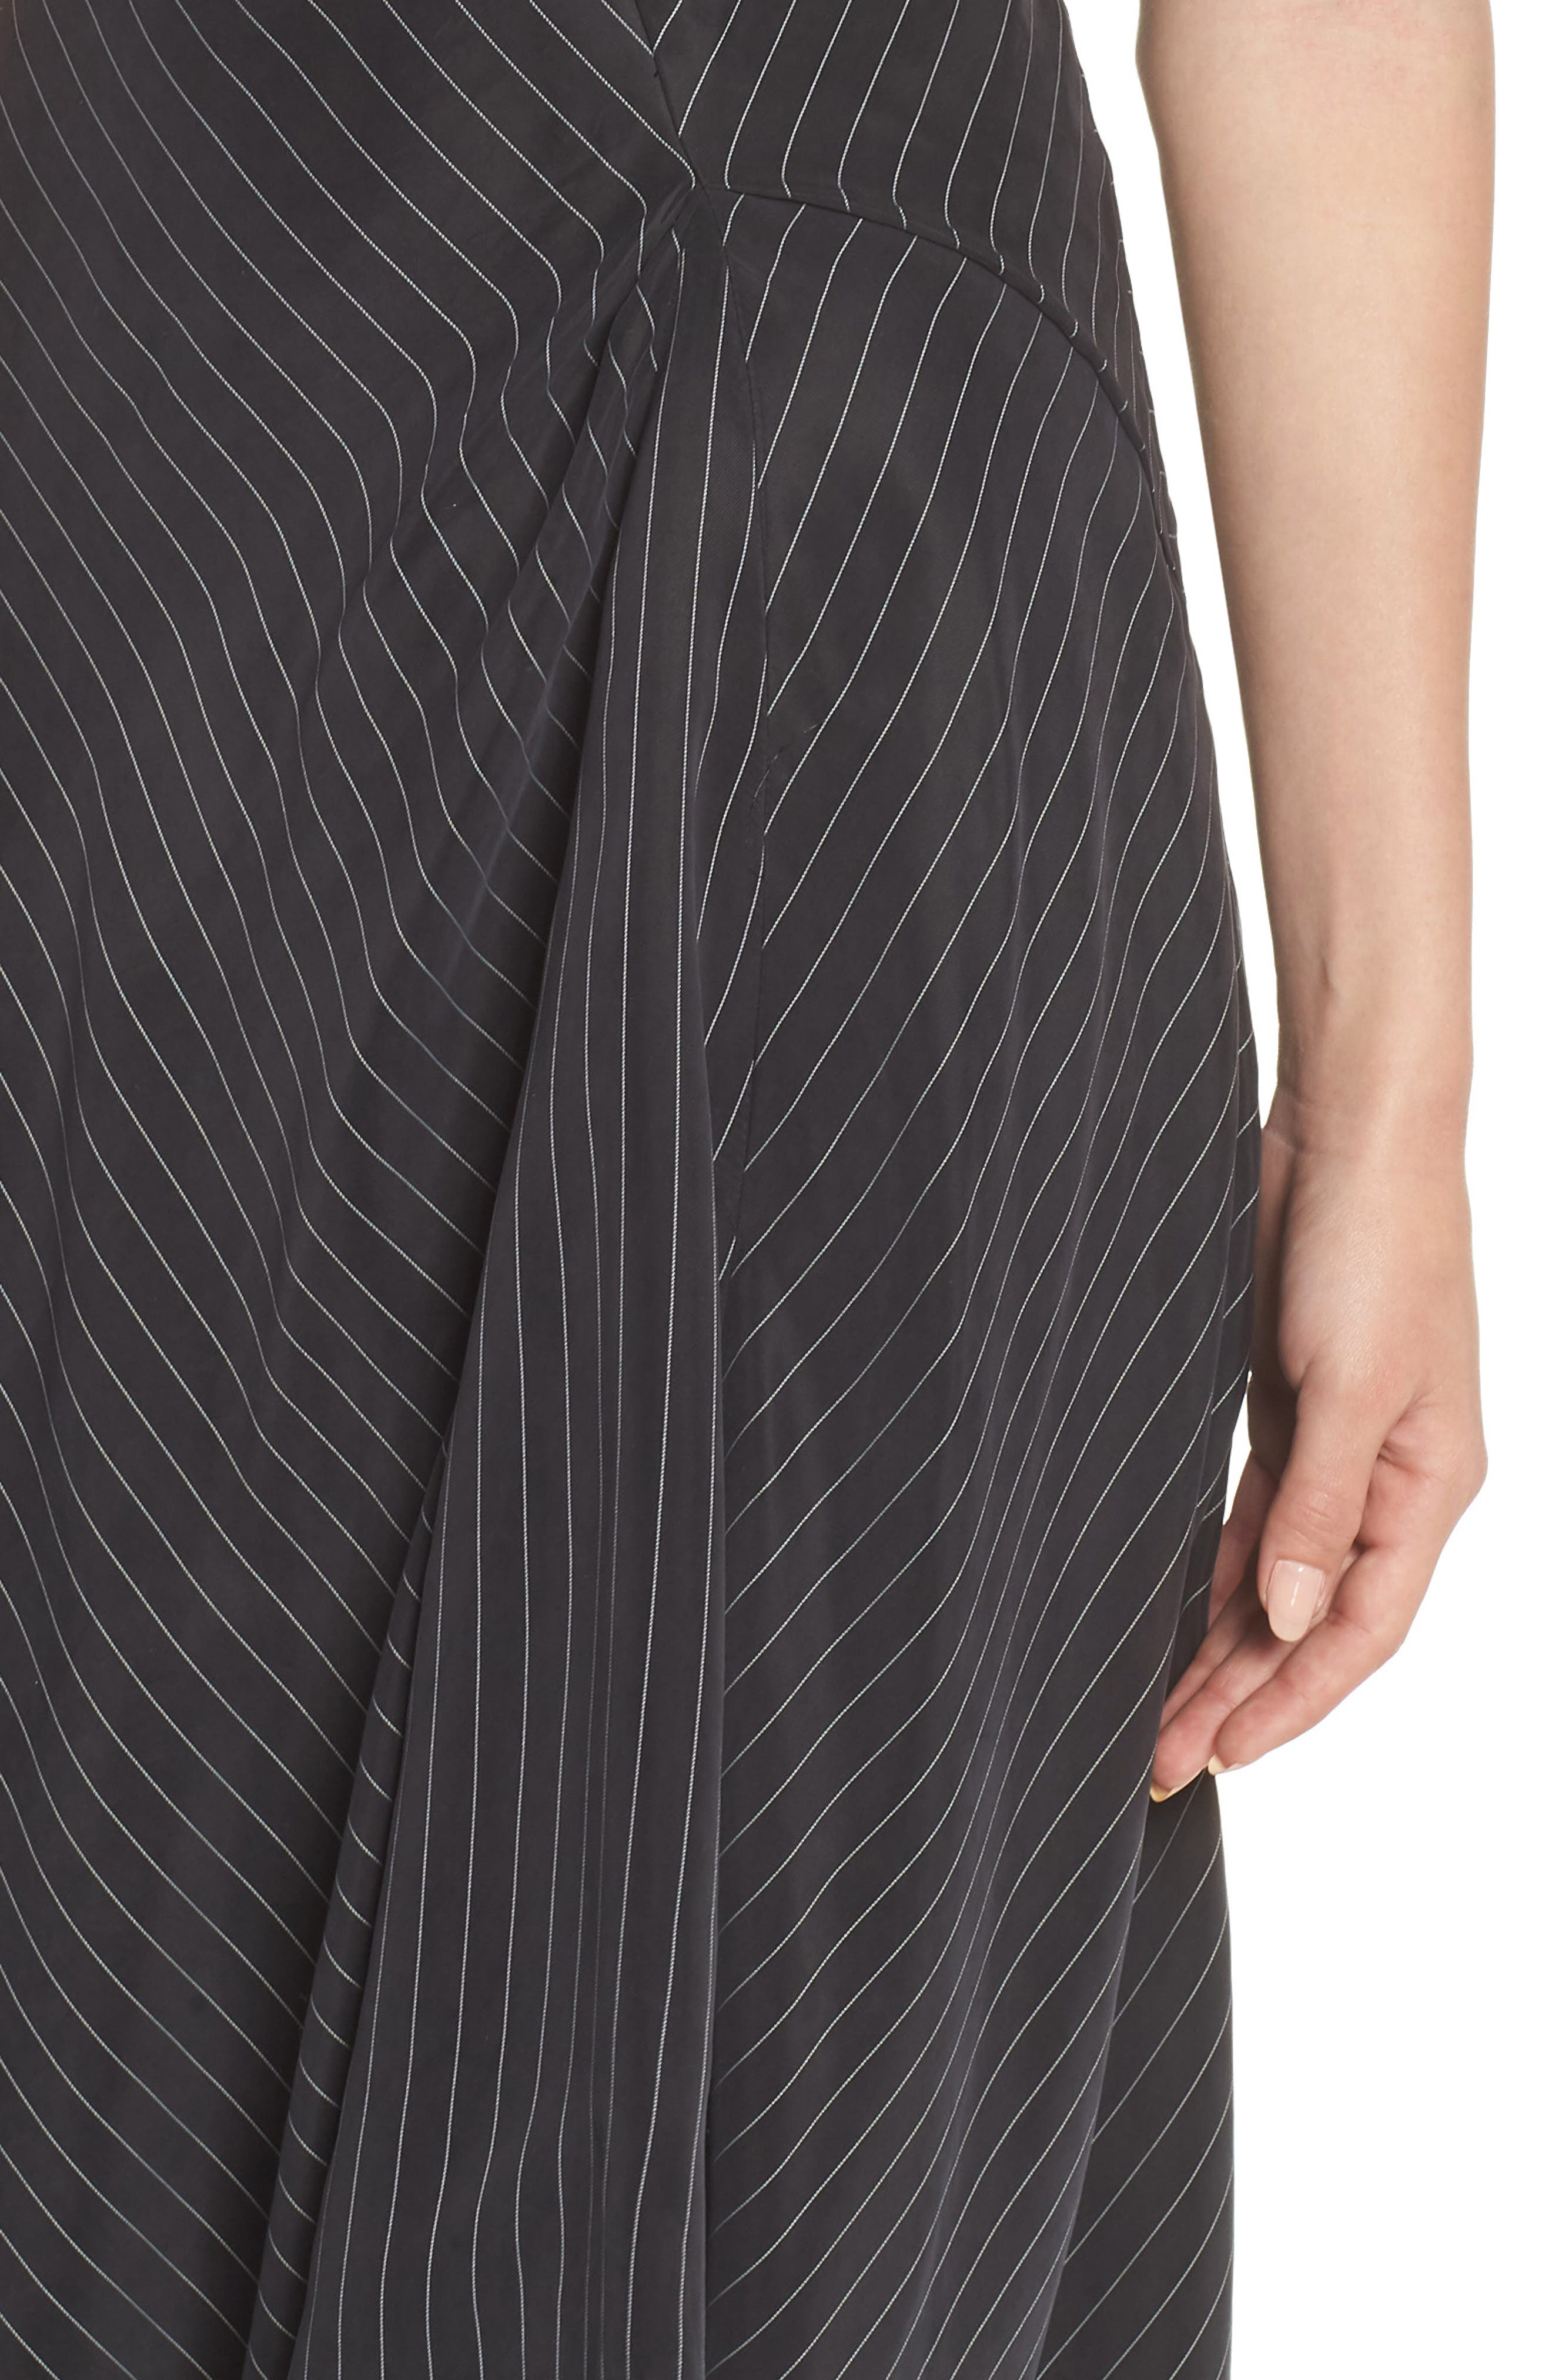 Bay Area Sleeveless Pinstripe Midi Dress,                             Alternate thumbnail 4, color,                             001